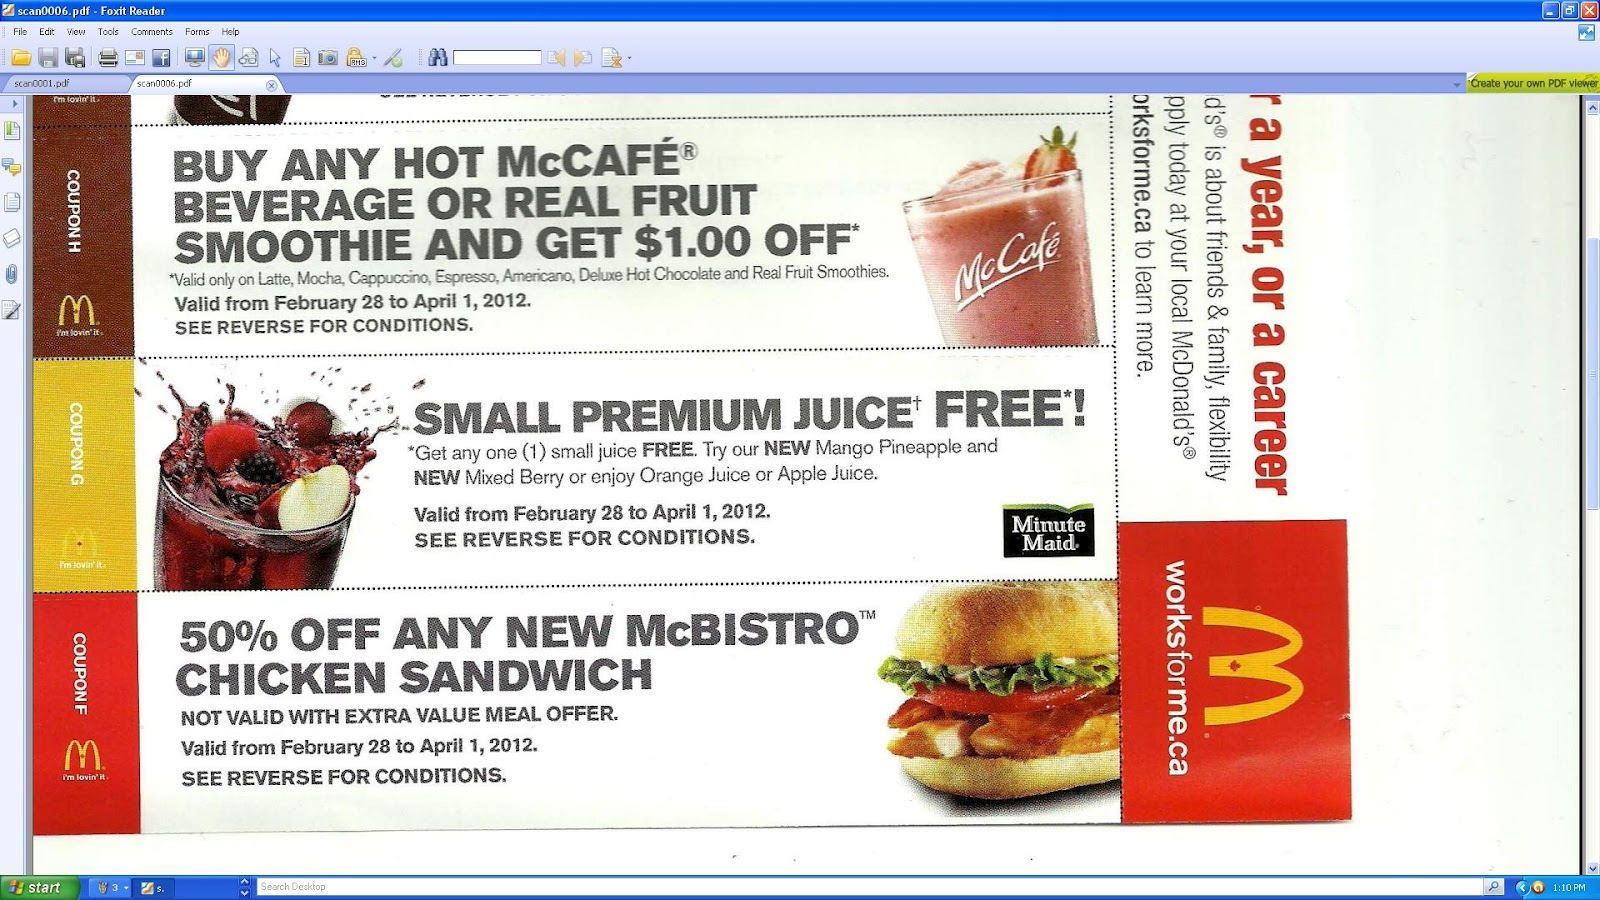 "Feb 17,  · I got some coupons in the mail from McDonald's yesterday! I think that's the first time that's ever happened. They actually weren't even addressed to me, but rather to ""Resident"" at my address. Either way, I don't care it's free coupons! McDonald's has been heavily promoting their new Fruit & Maple Oatmeal."